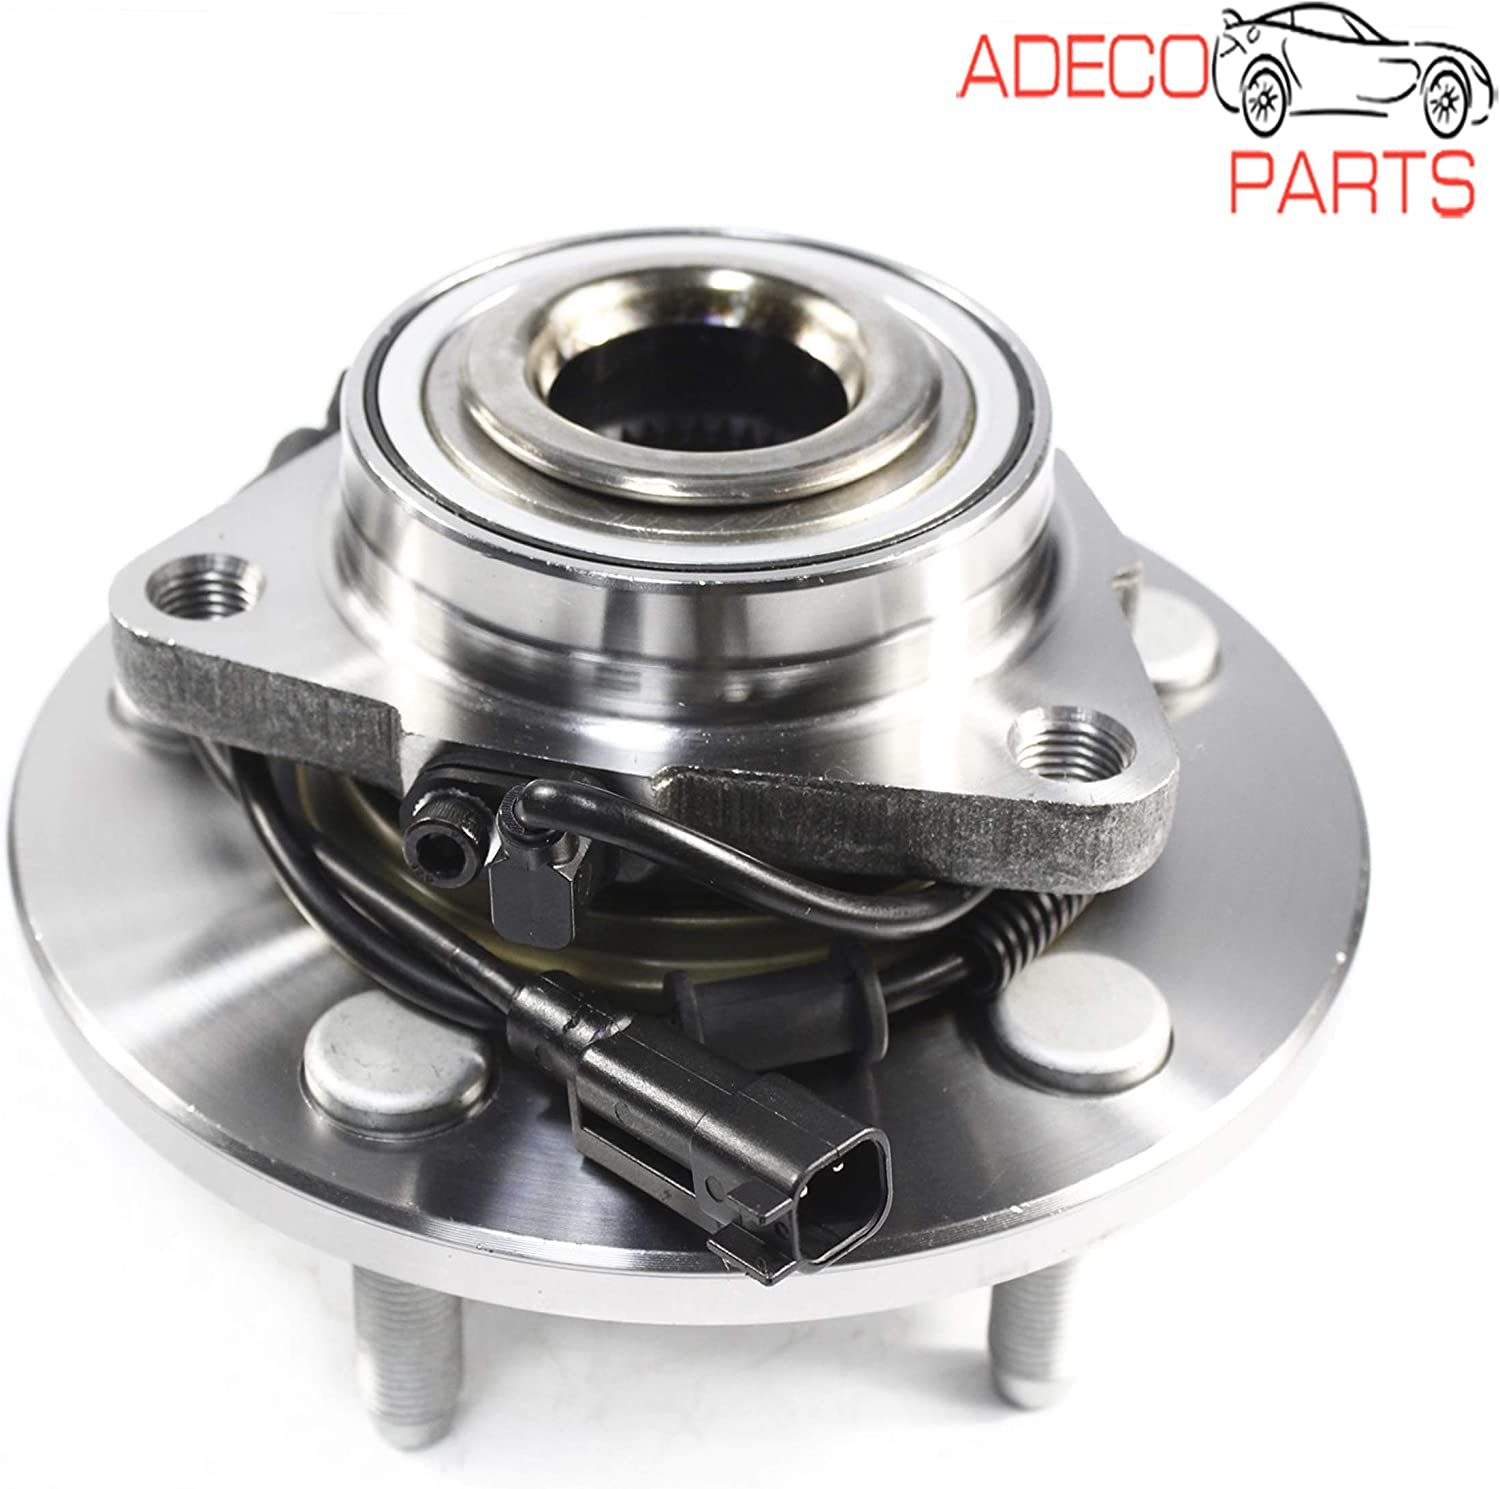 AdecoAutoParts /© Front Wheel Bearing and Hub Assembly Replacement WH515151 for Ram 1500 2012-2017 MB25309